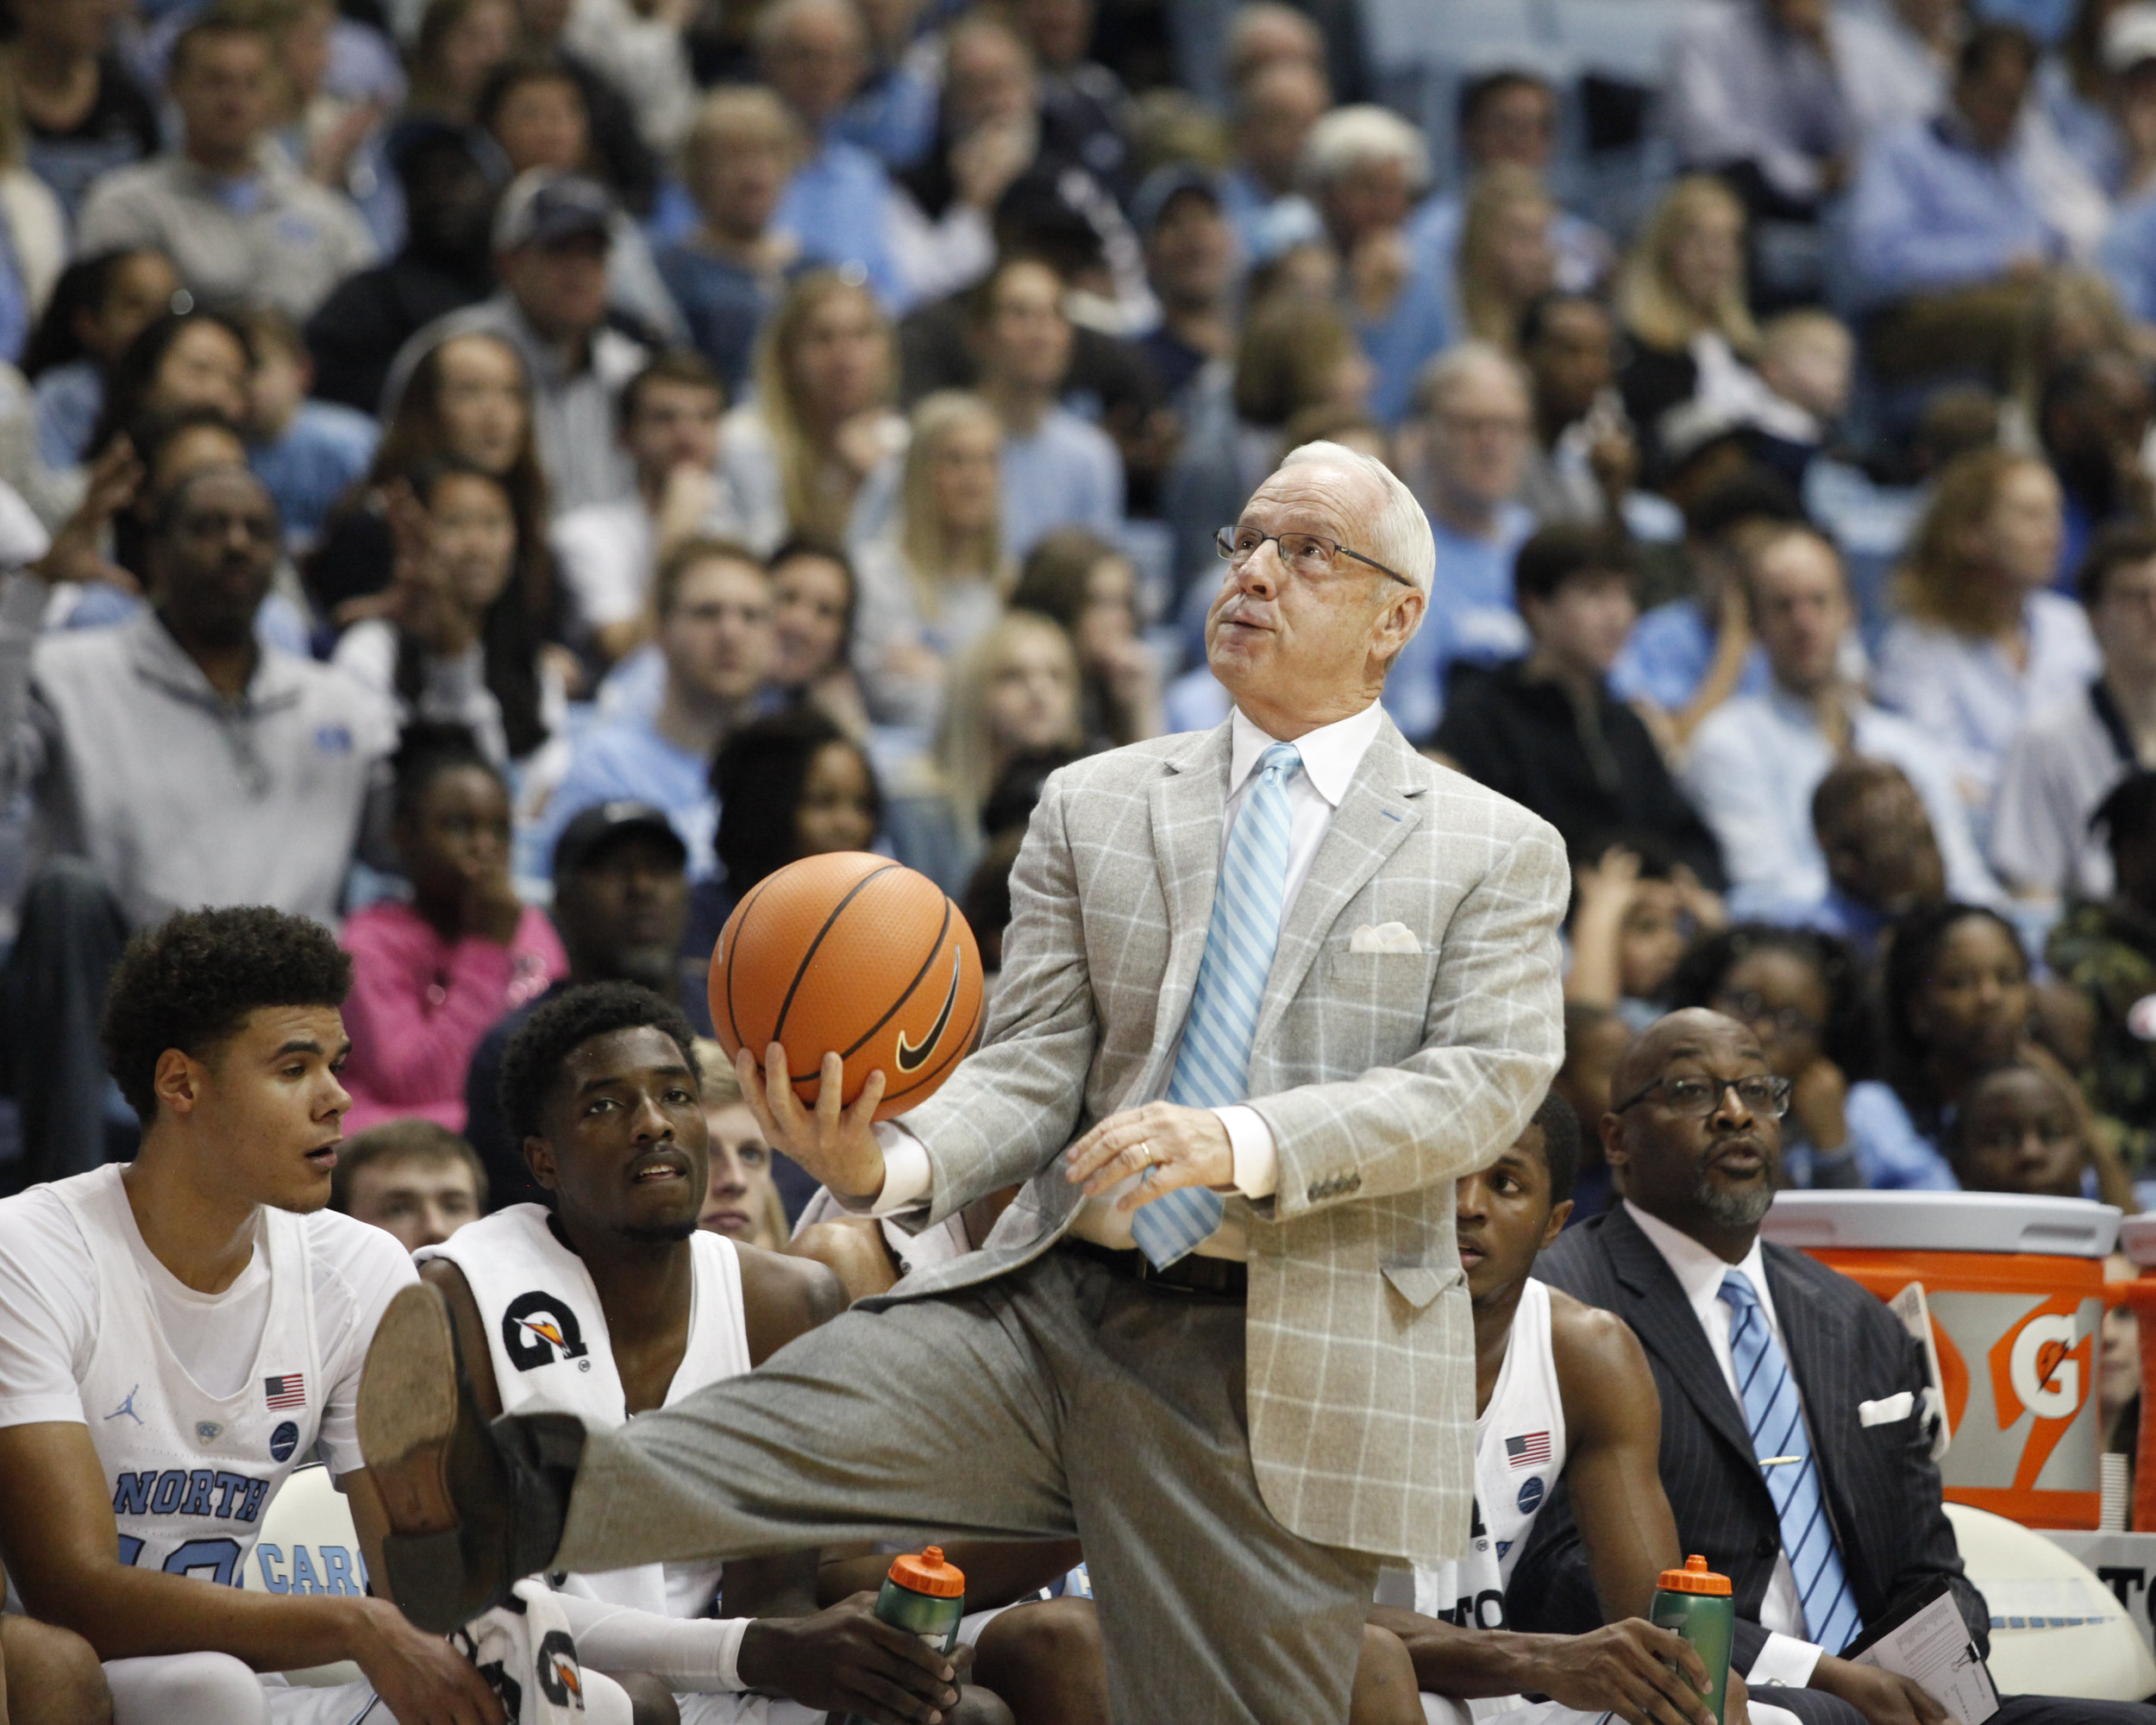 UNC head coach Roy Williams pretends to punt the basketball during the game against Pittsburgh at the Dean Smith Center.